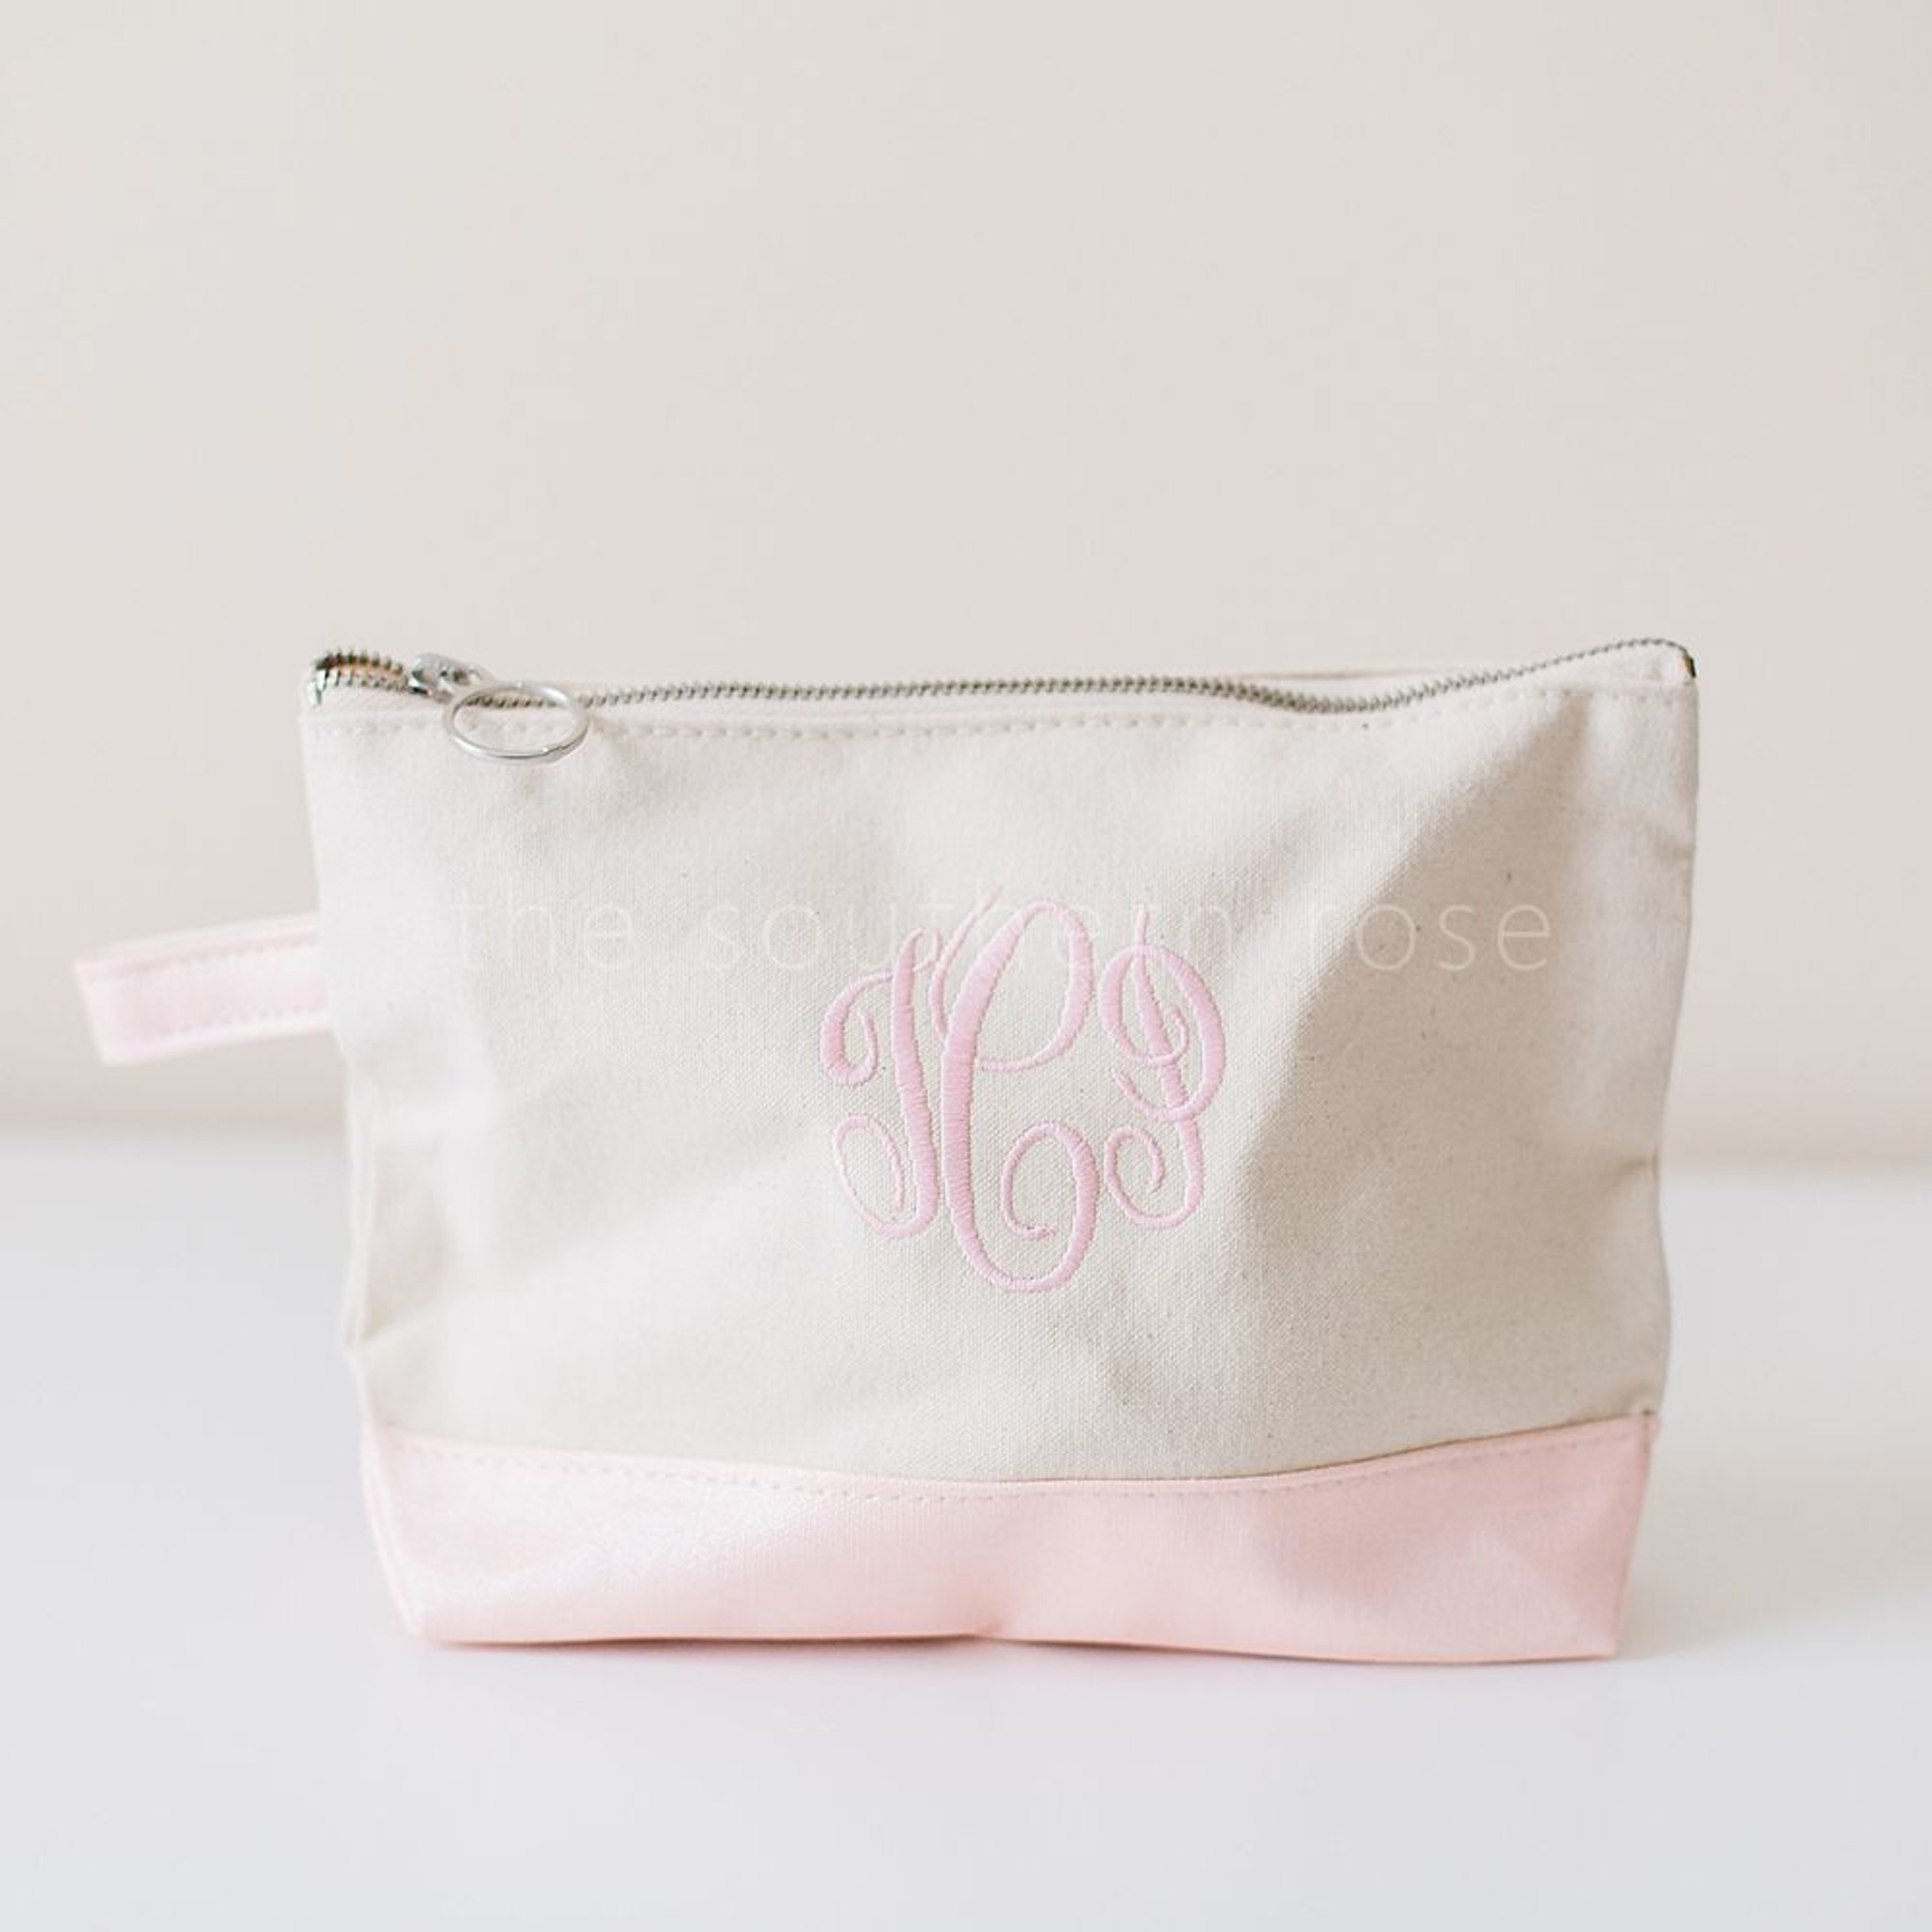 Personalized Cosmetic Bag - Metallic Pink